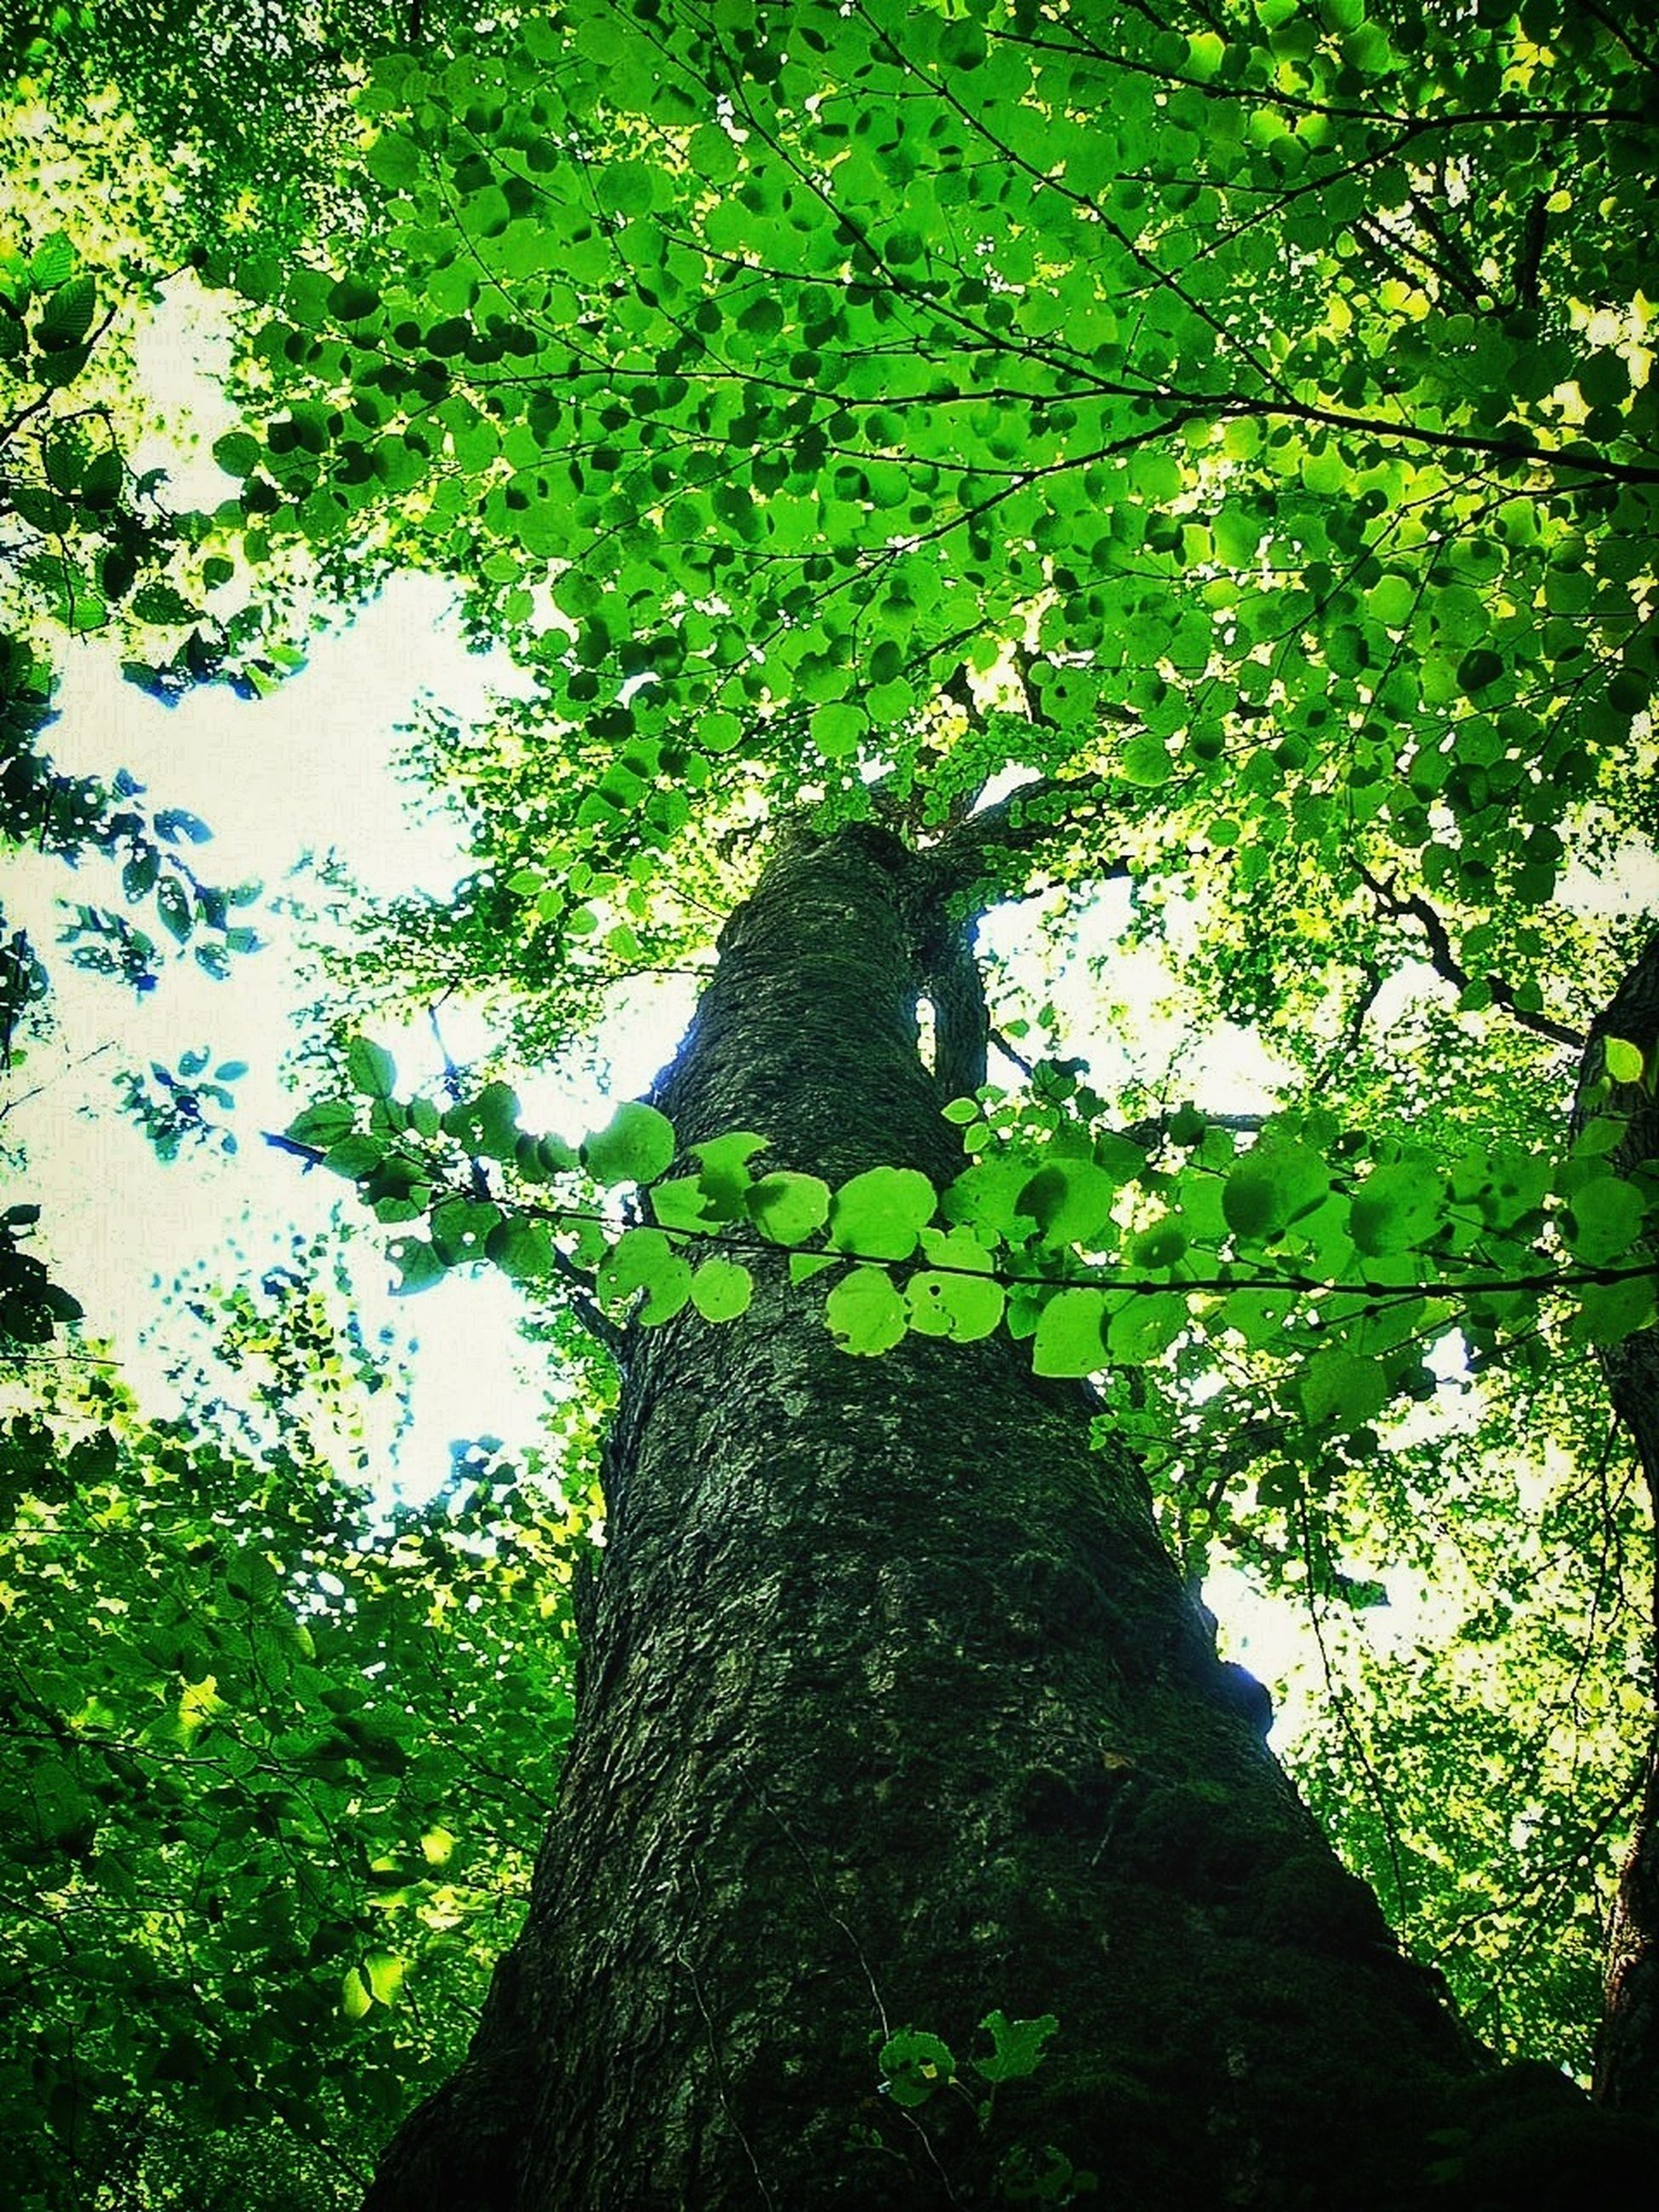 tree, green color, growth, tree trunk, branch, nature, low angle view, tranquility, wood - material, leaf, moss, plant, beauty in nature, textured, outdoors, green, day, no people, sunlight, forest